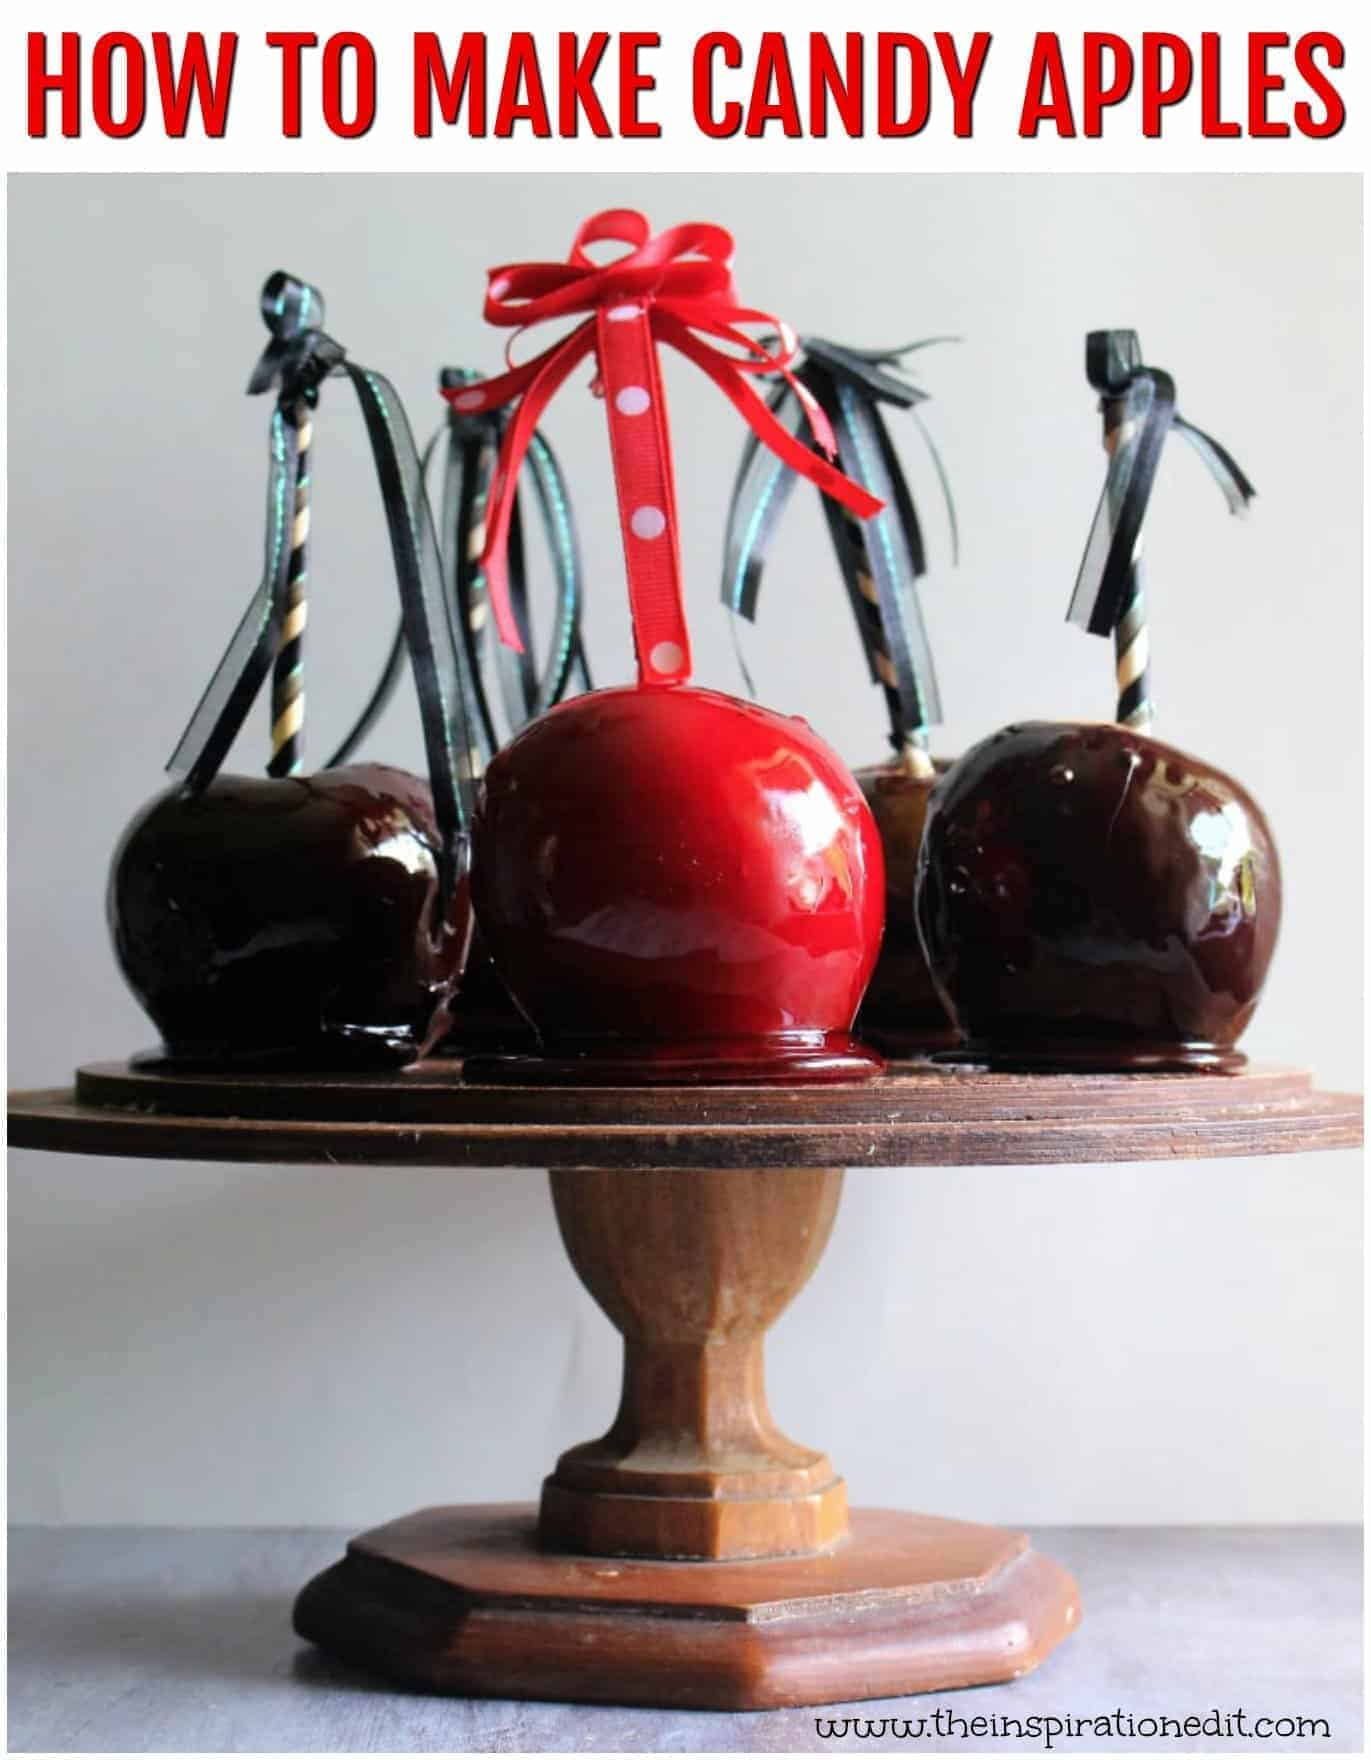 Candy Apples Recipe You Will Love · The Inspiration Edit